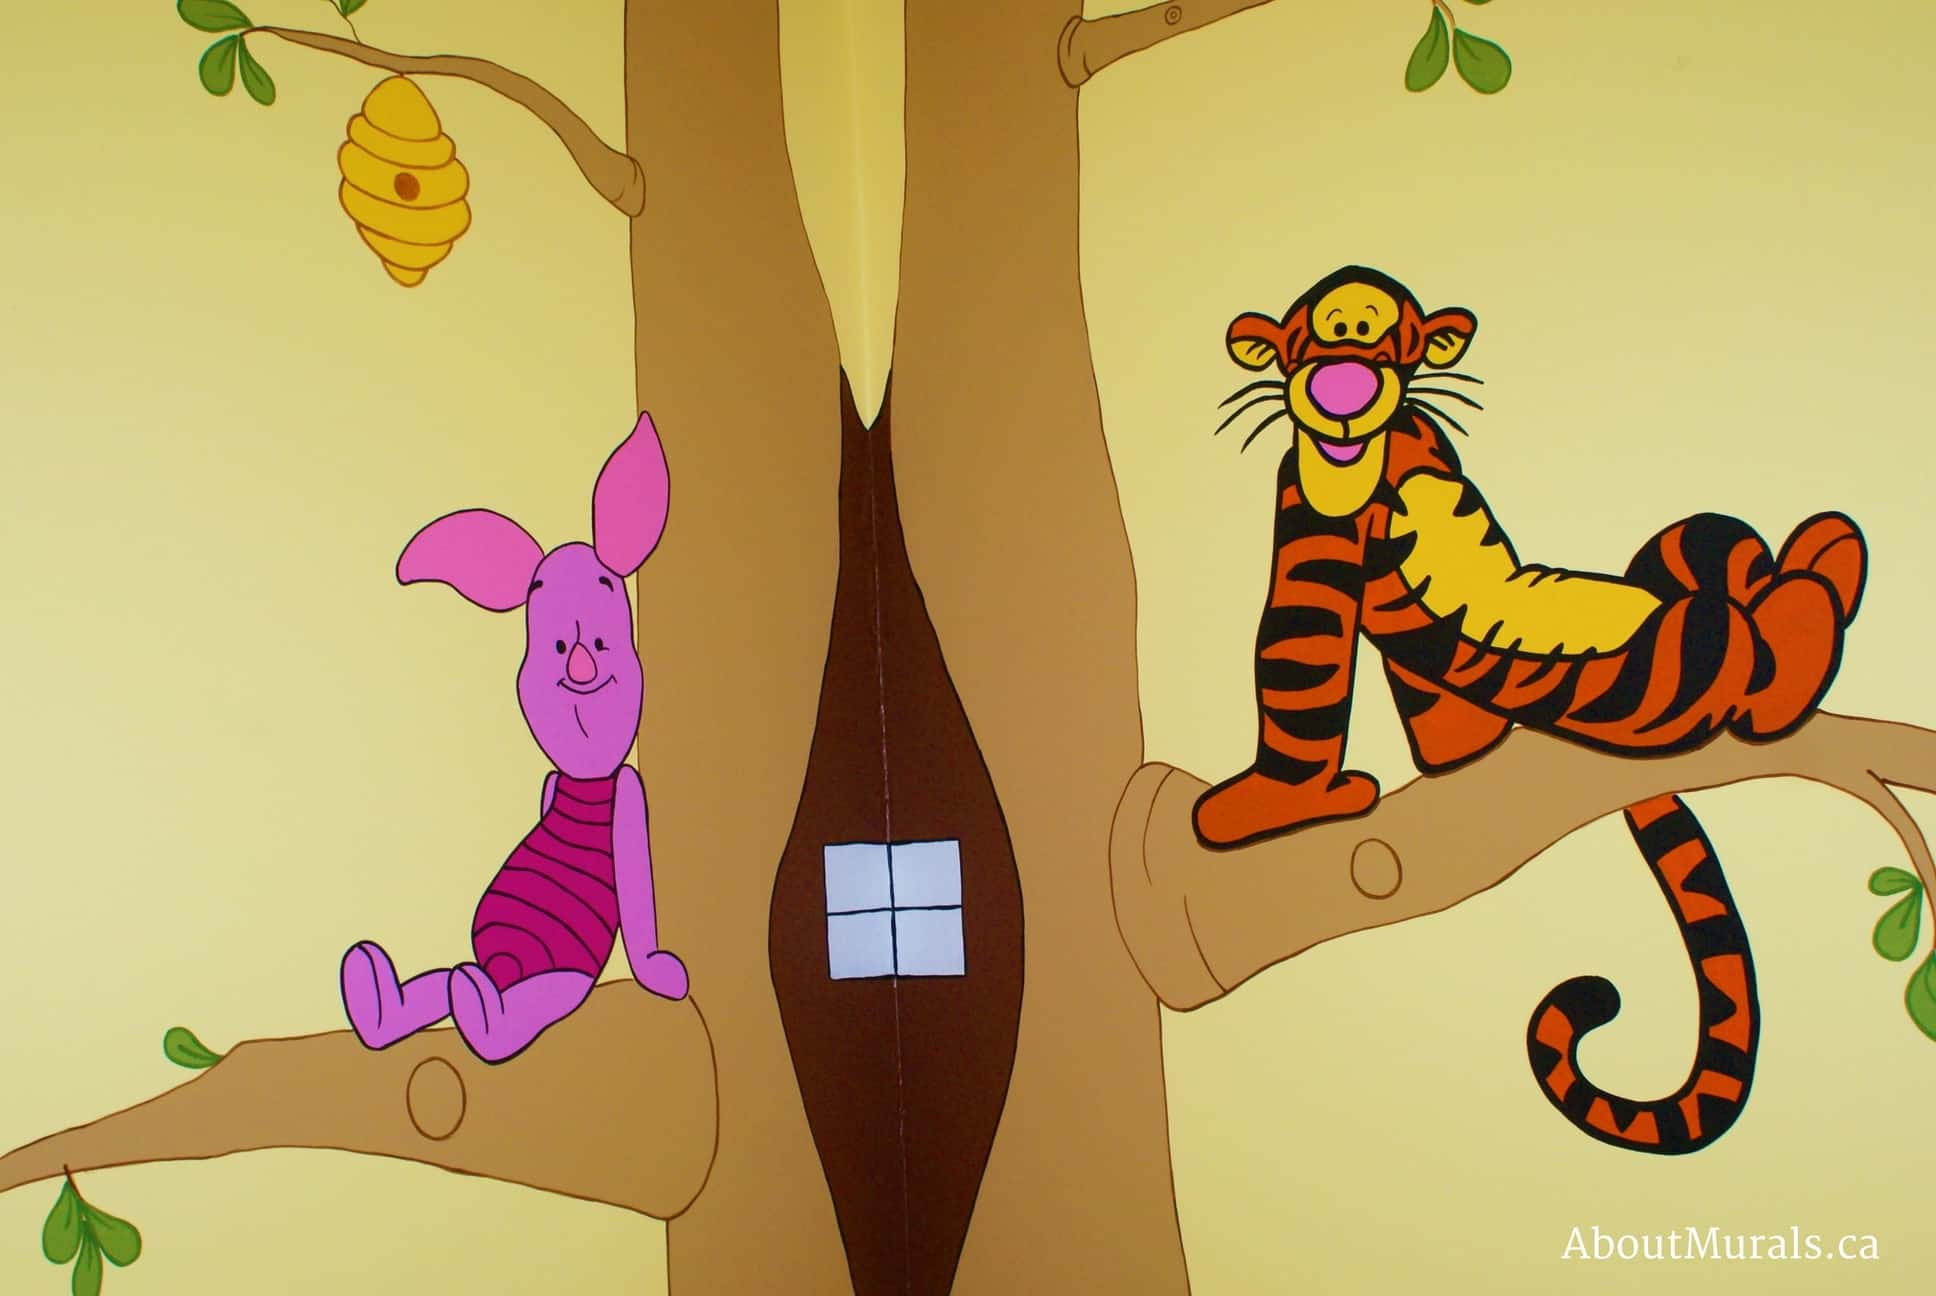 A kids wall mural featuring Tigger and Piglet from Winnie the Pooh